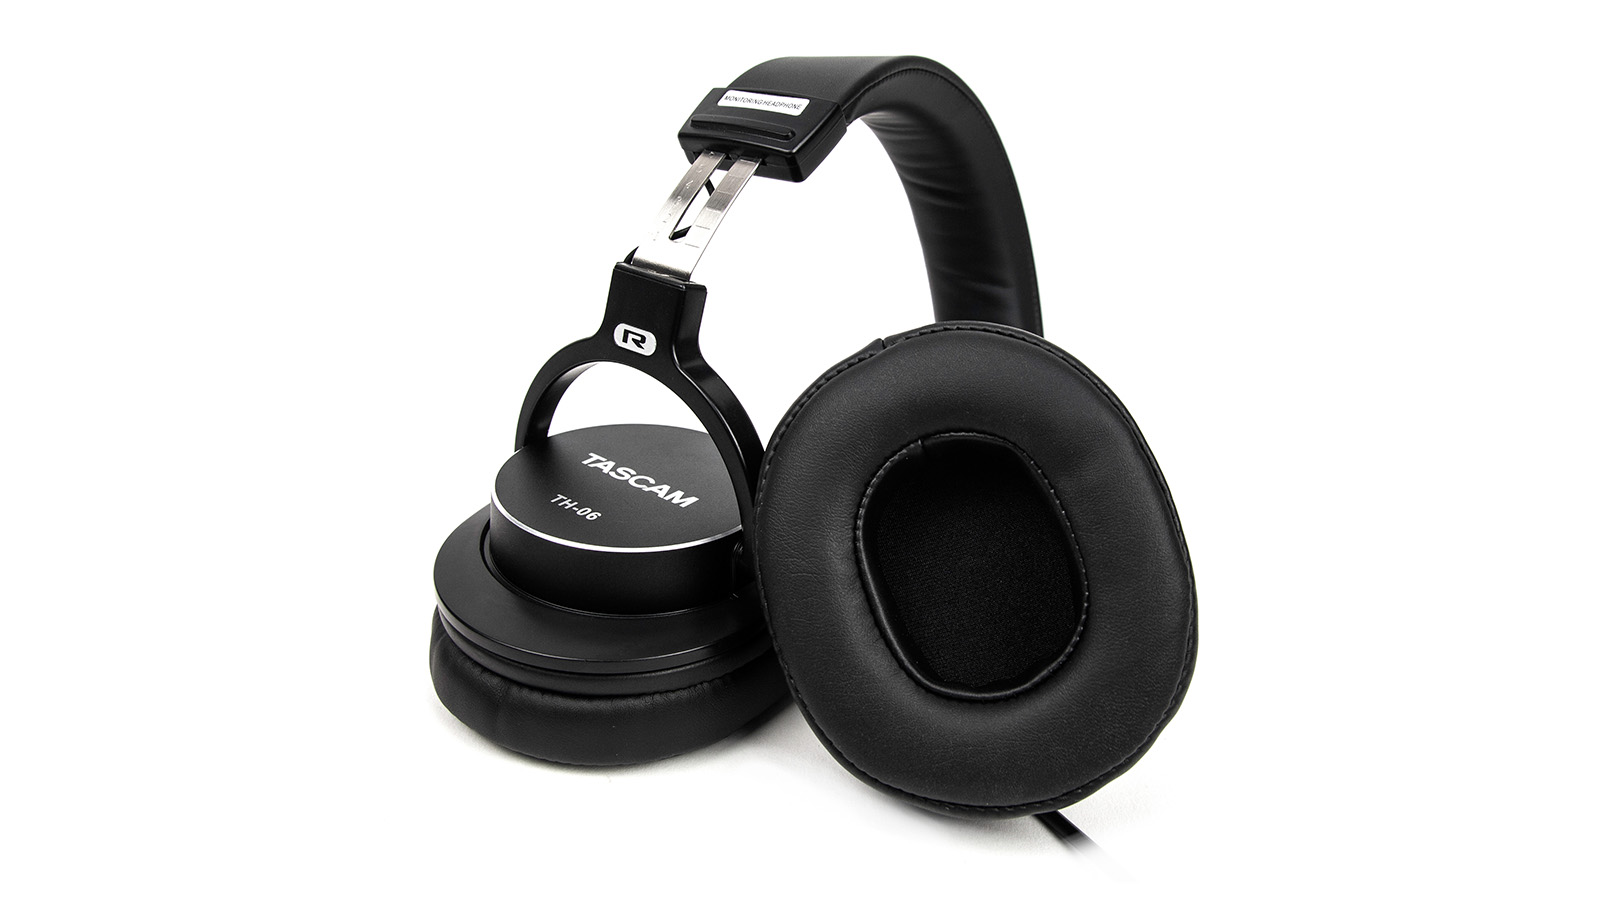 Tascam TH-06 Monitoring Headphones with Bass XL tech